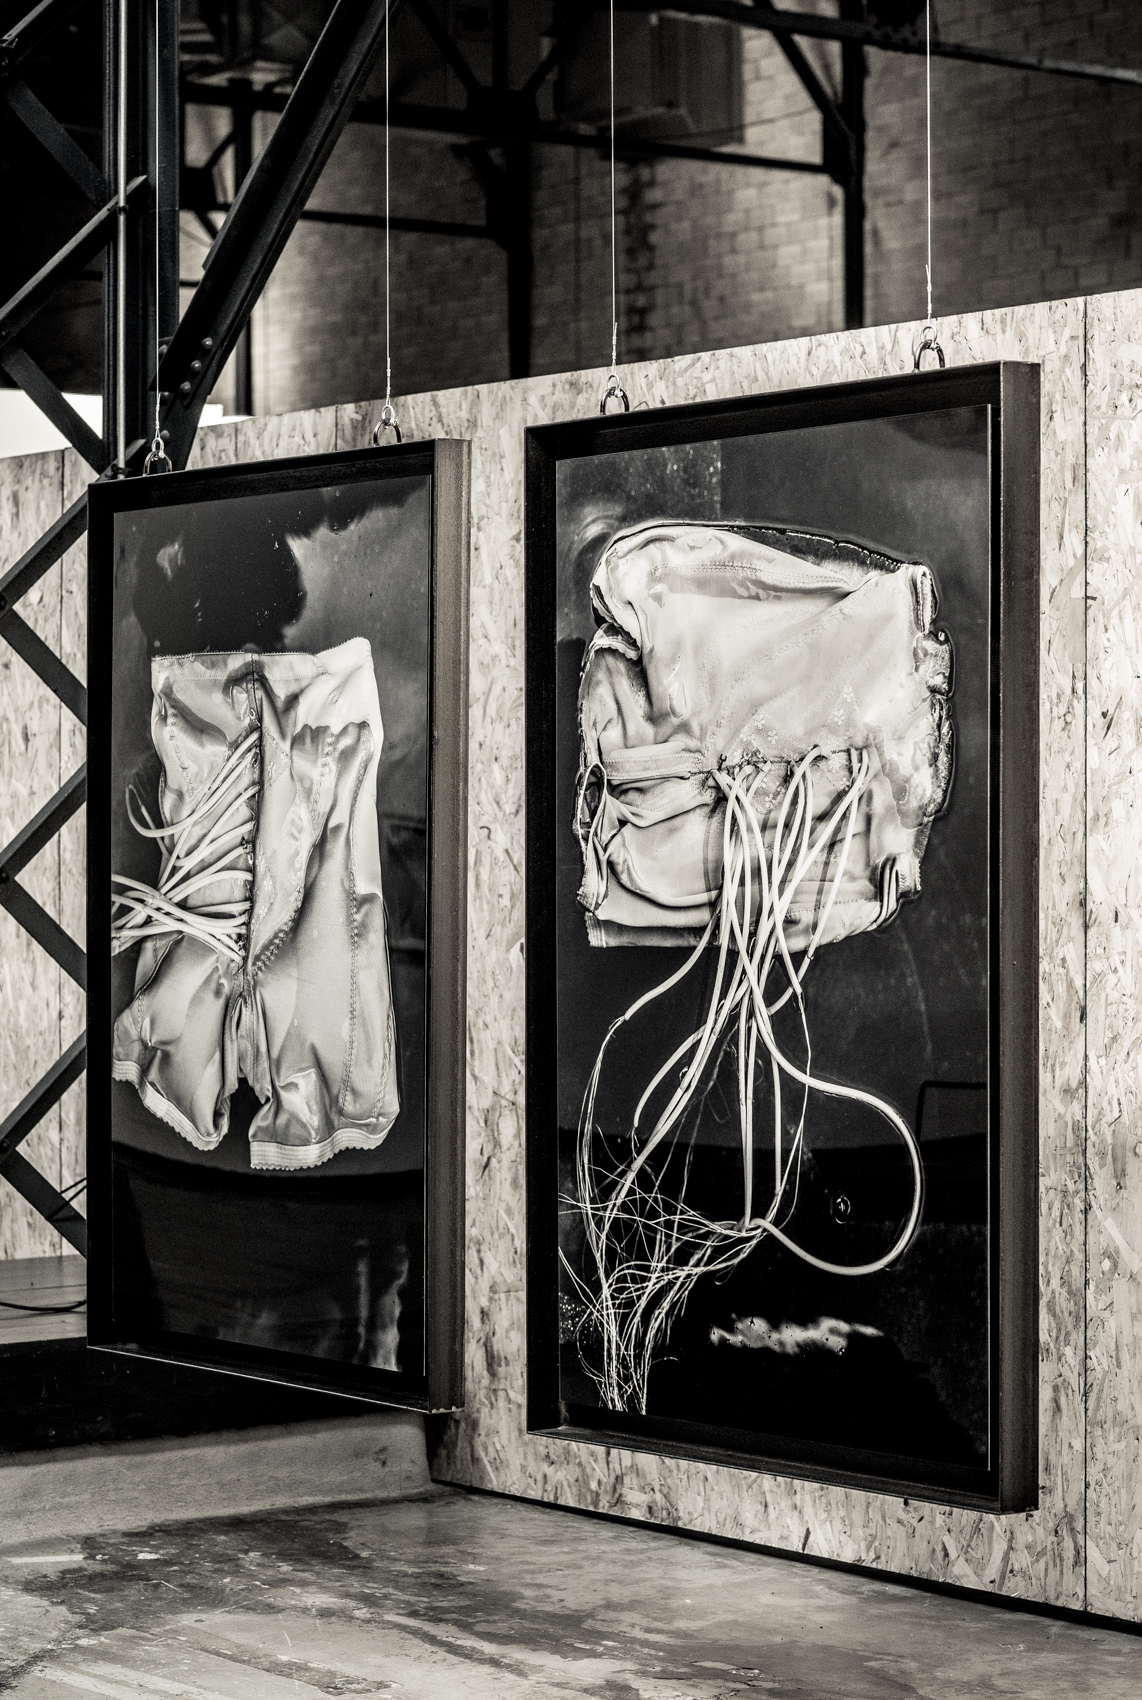 A word from the artist  Soif [série méduses] is a series of photographic works elaborated from props used during the y2o project. Evocations of desire, the thirst for the other. Body tensions, plexus pulsations, sinuous and electrical, fluid and glacial, just as medusas.